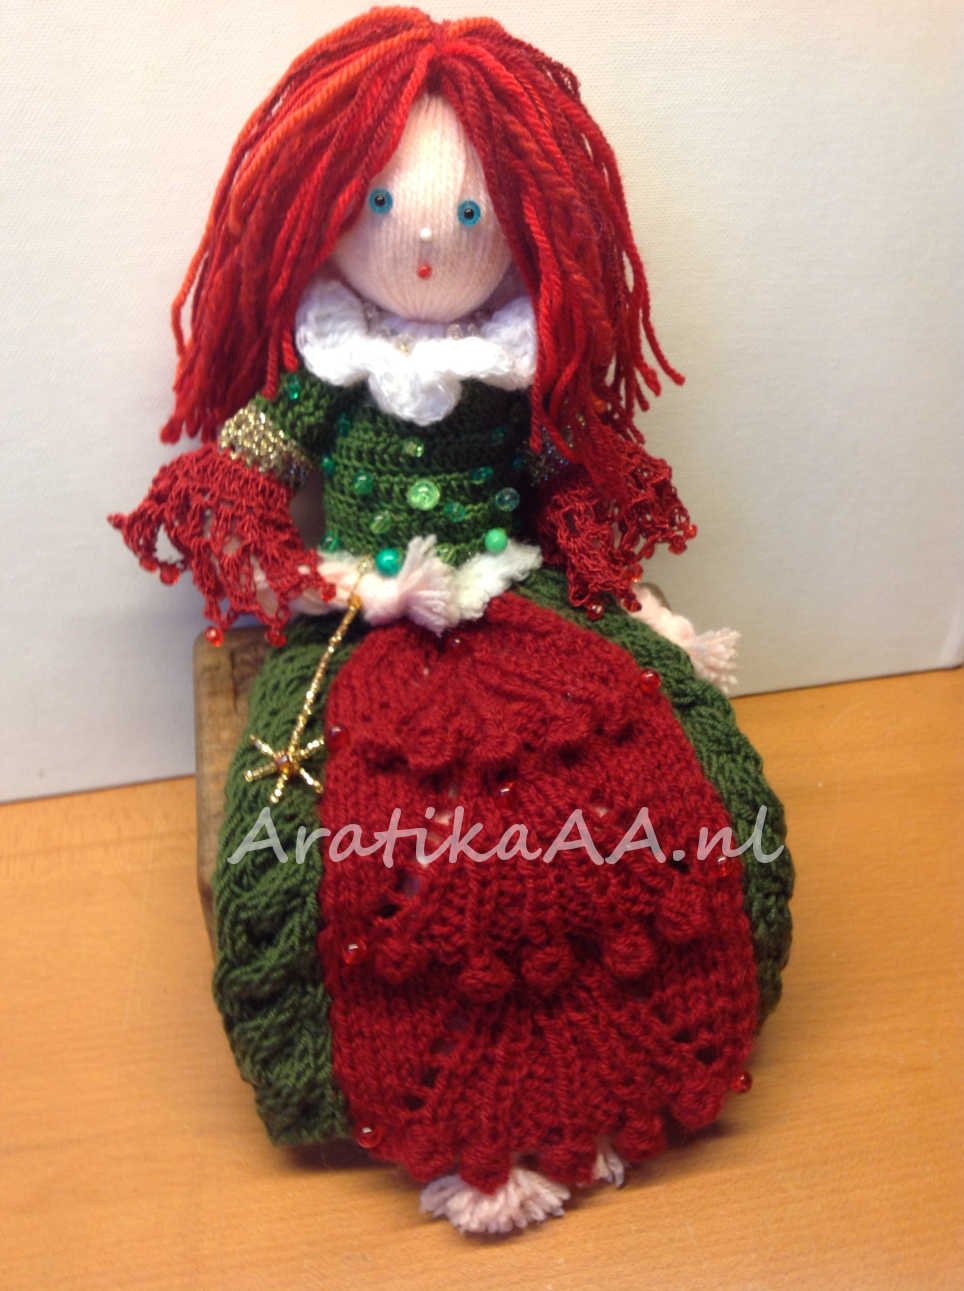 Rouska - A Midwinter Fairy joins us for Christmas